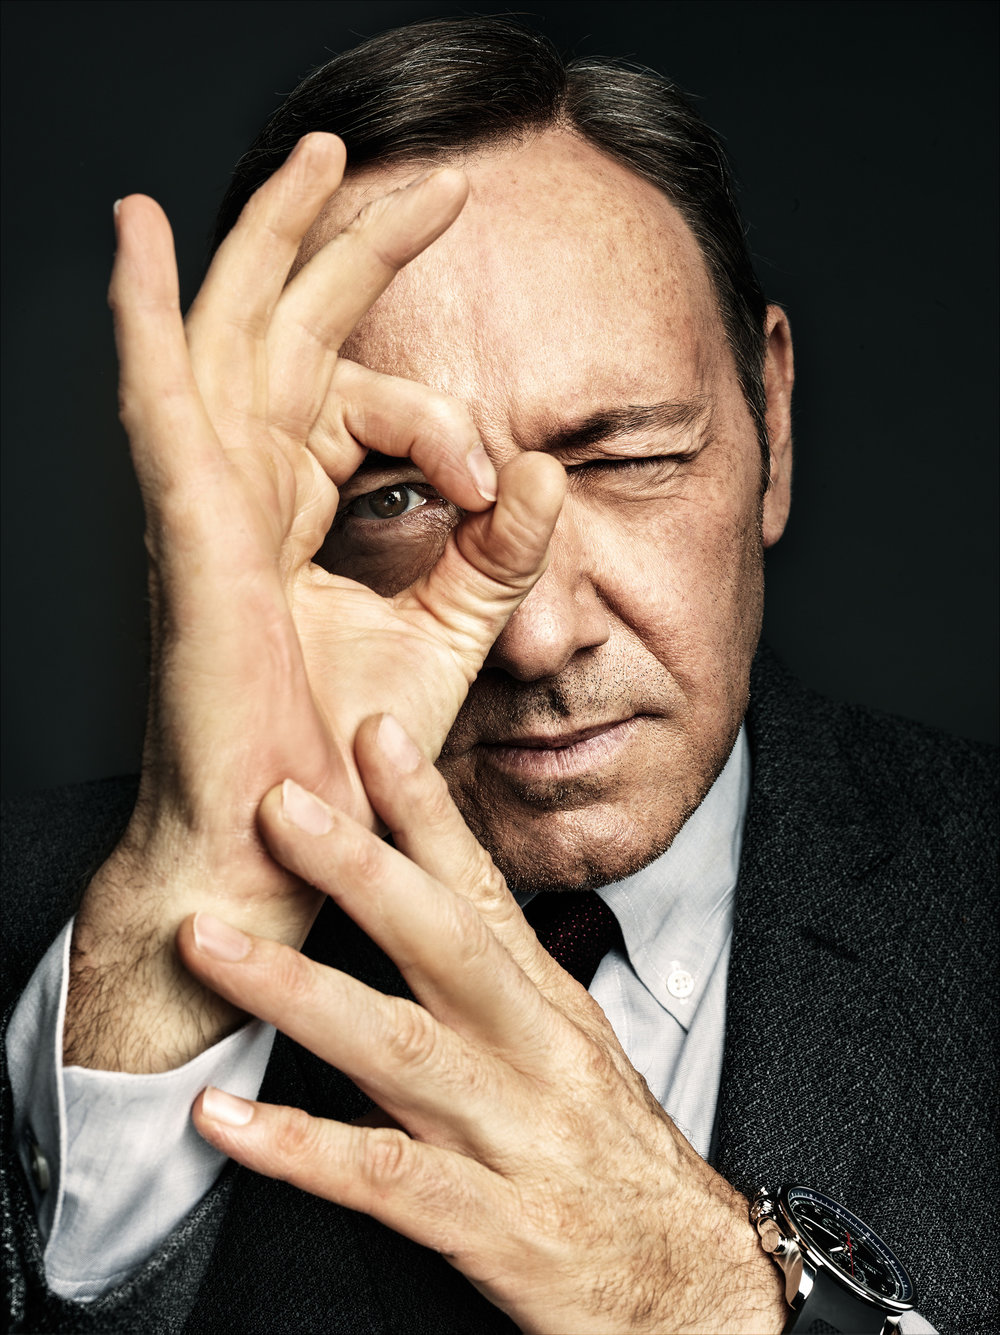 5-KEVIN_SPACEY_0082TPK_F  67 & 45.jpg